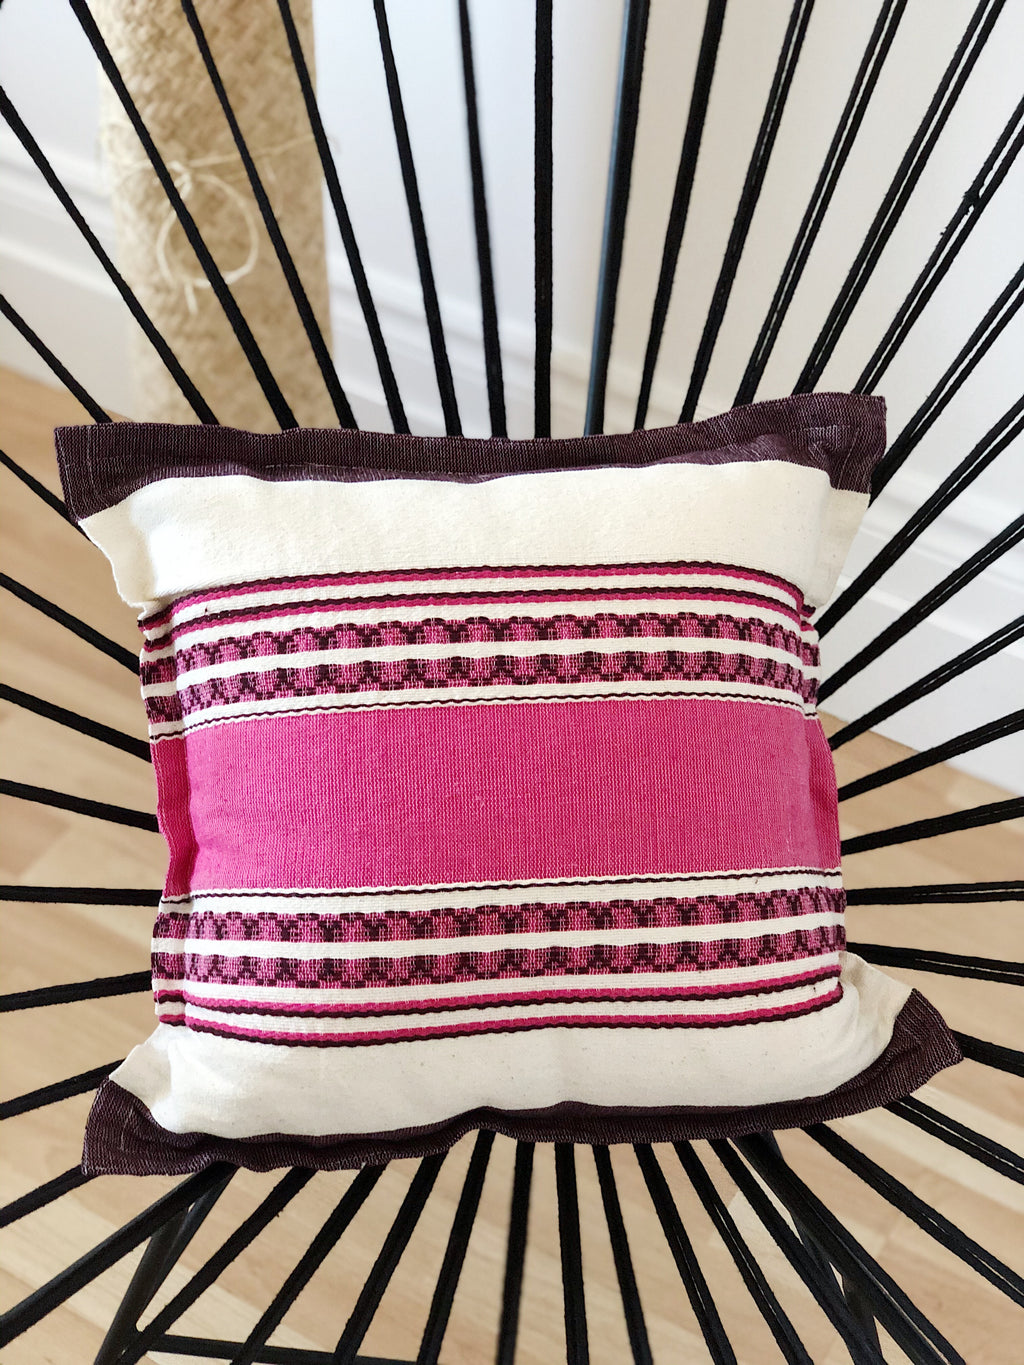 The Toluca cushion cover